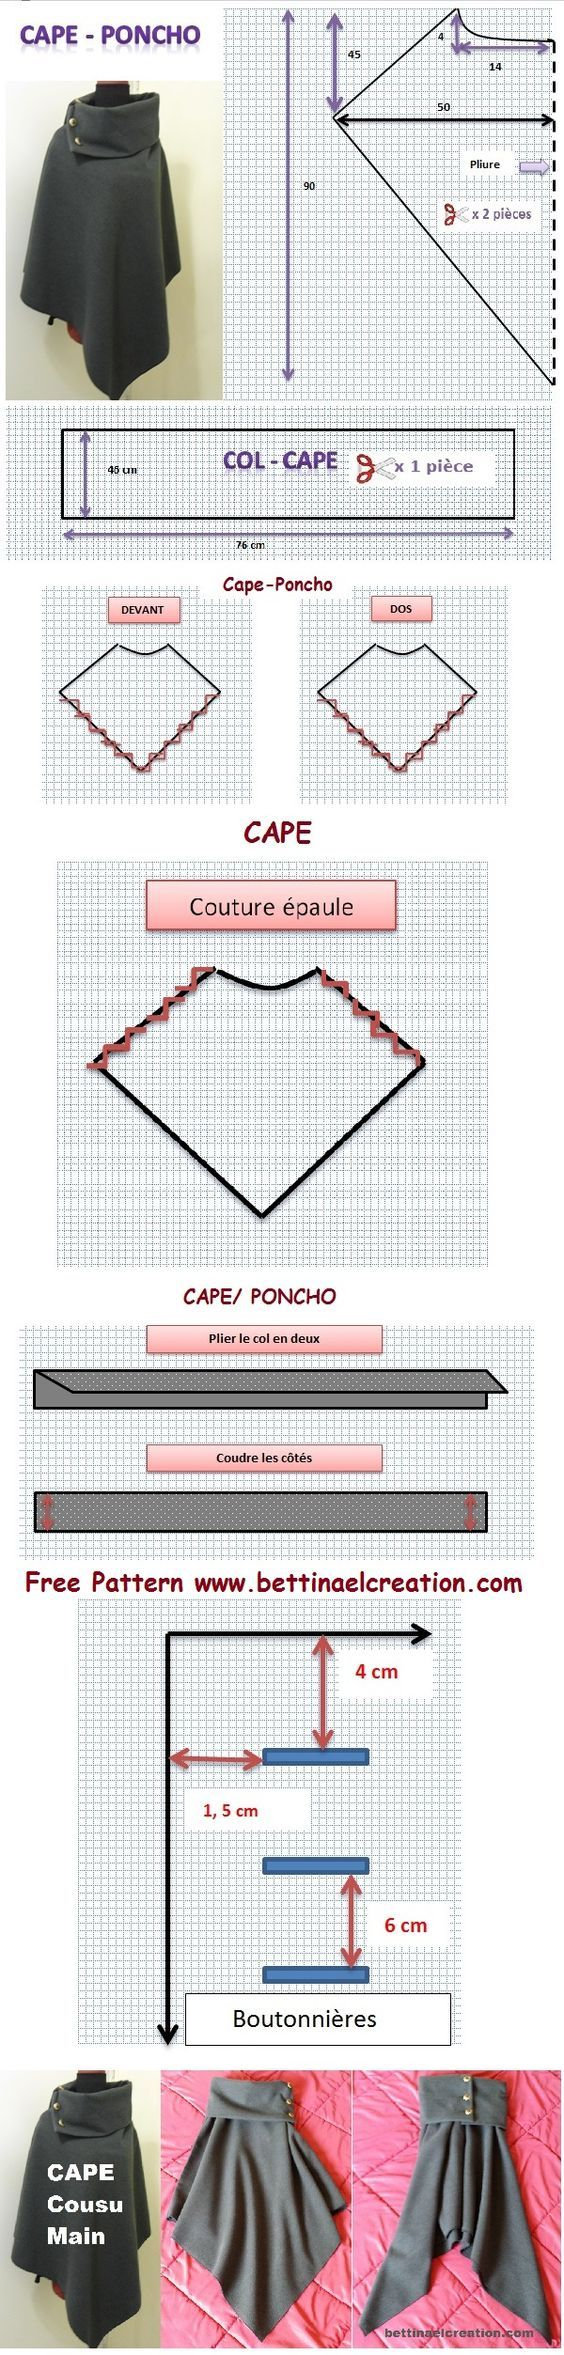 Tuto gratuit/ free pattern, couture/sewing, diy cape/ poncho: